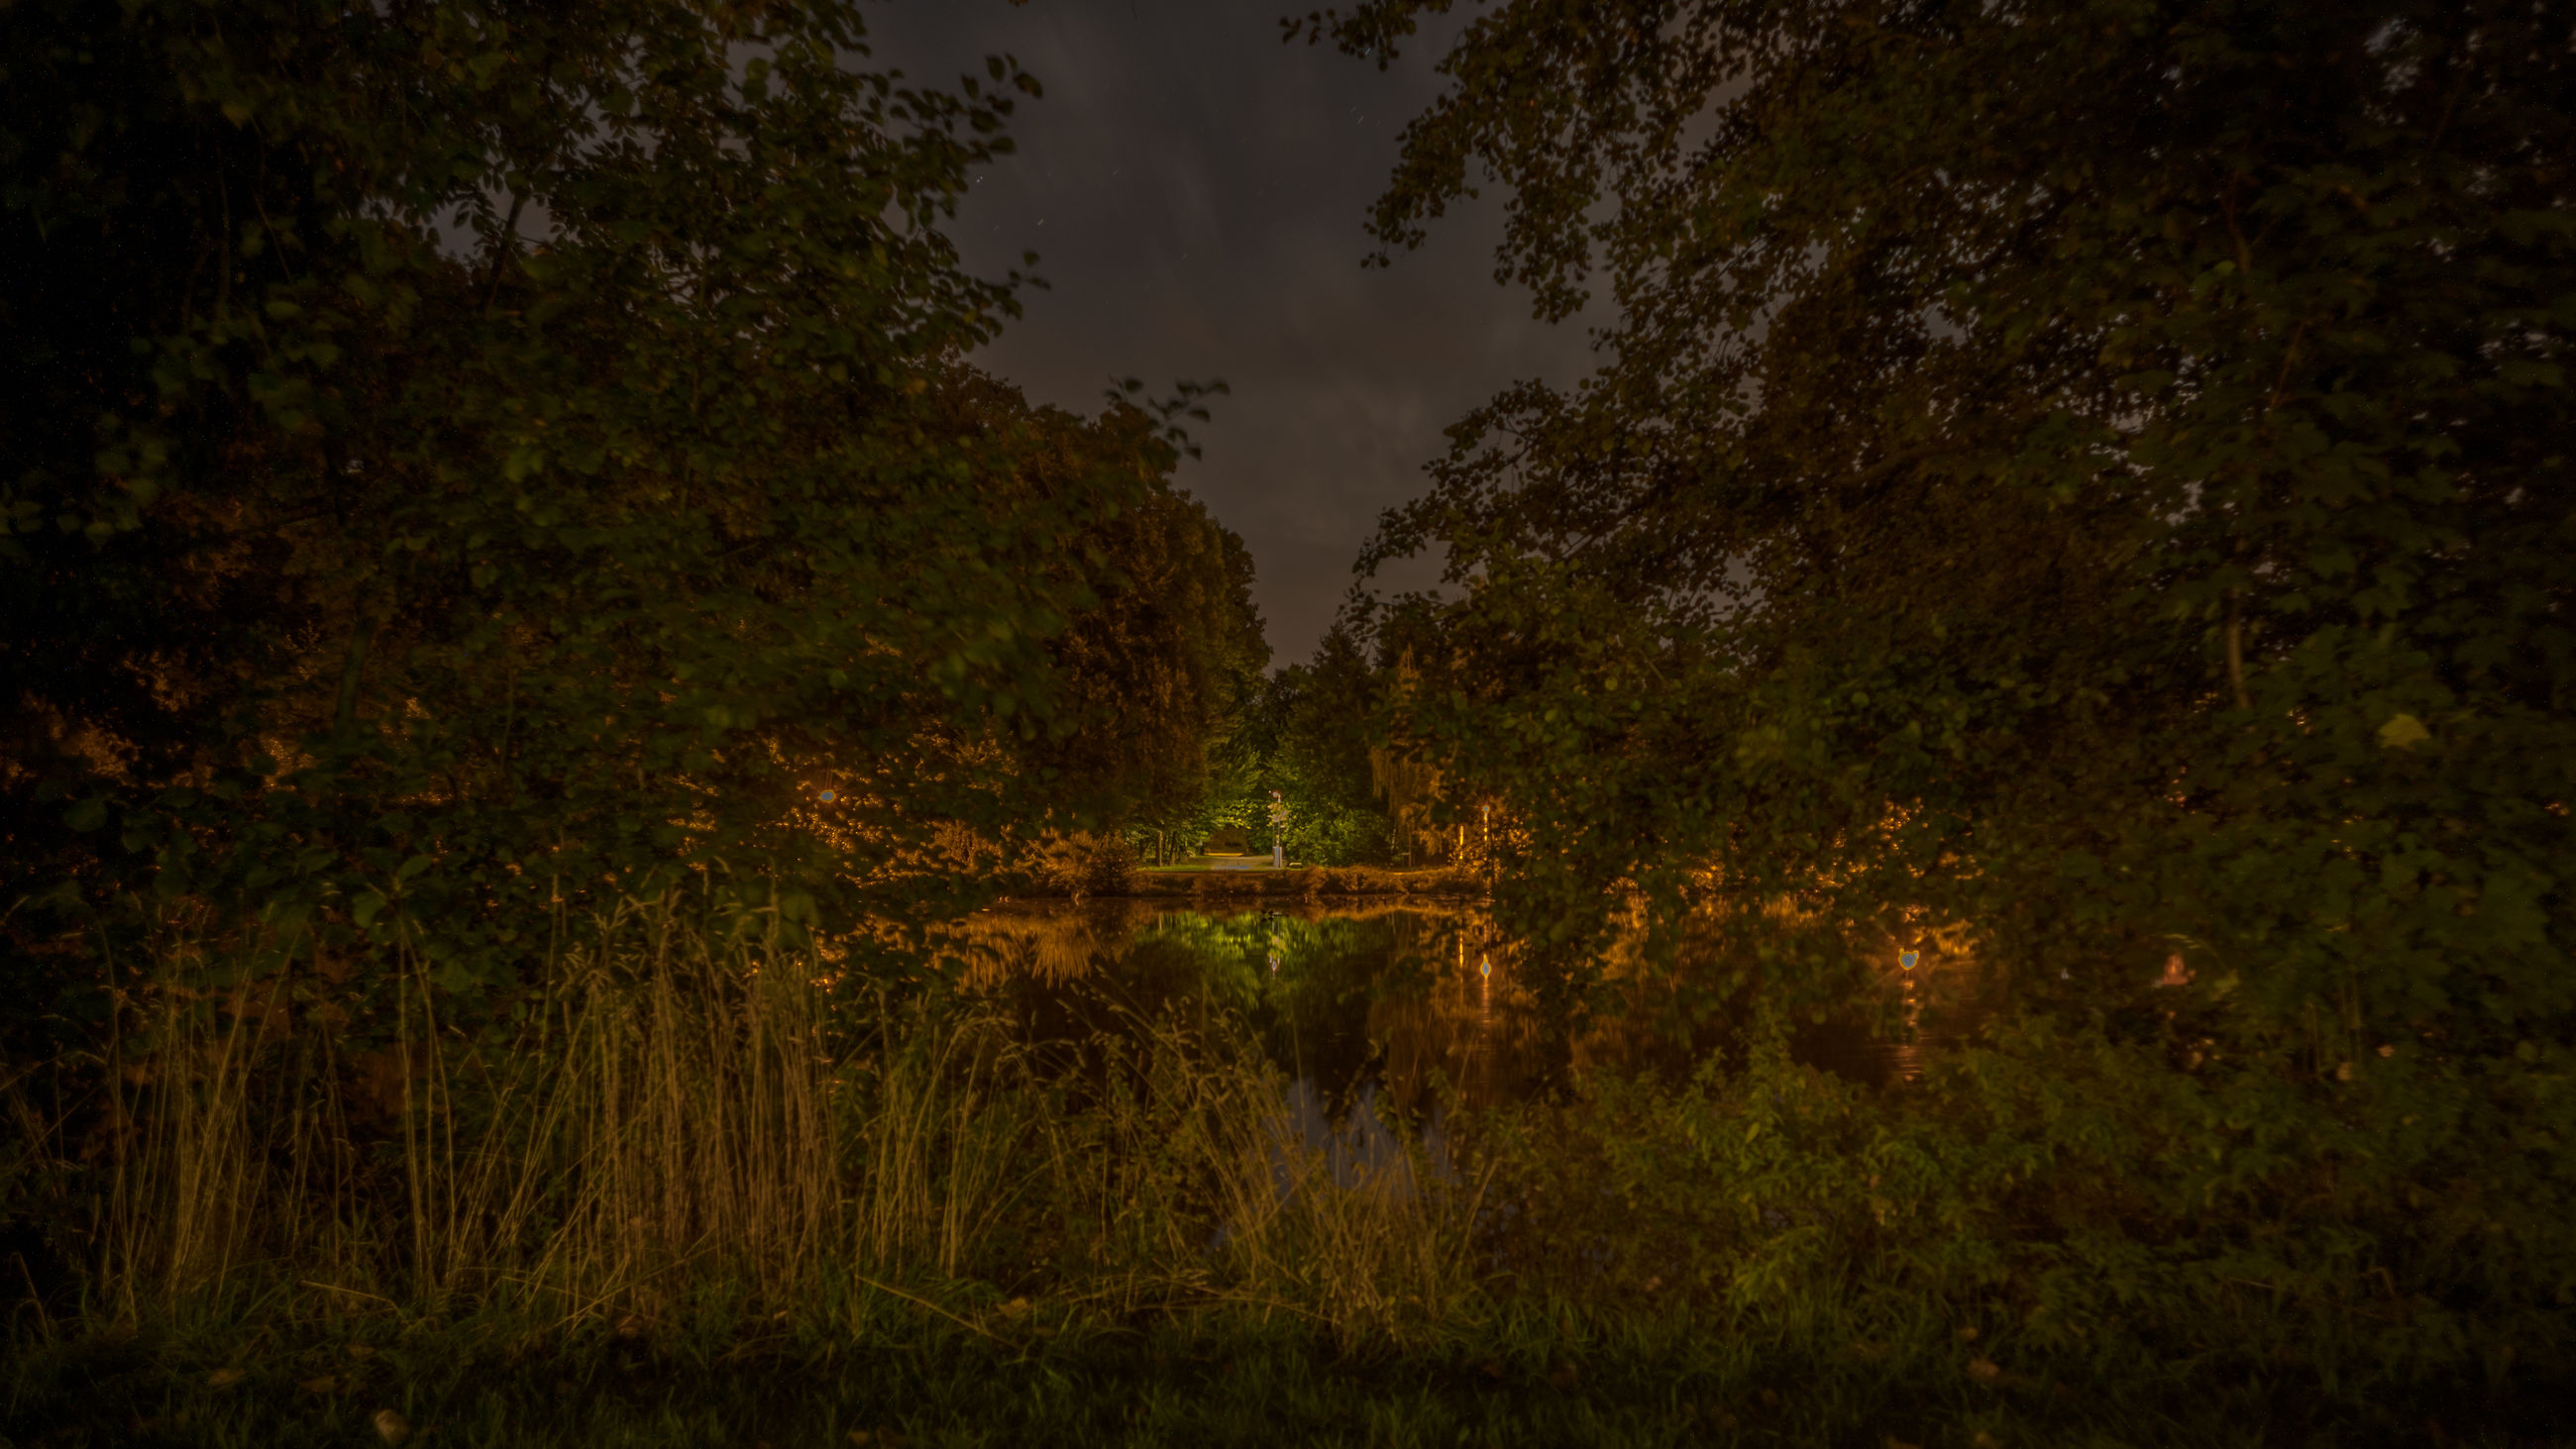 plant, nature, tree, darkness, forest, leaf, morning, sunlight, natural environment, land, beauty in nature, light, no people, tranquility, grass, environment, sky, scenics - nature, autumn, growth, green, outdoors, reflection, landscape, tranquil scene, field, non-urban scene, woodland